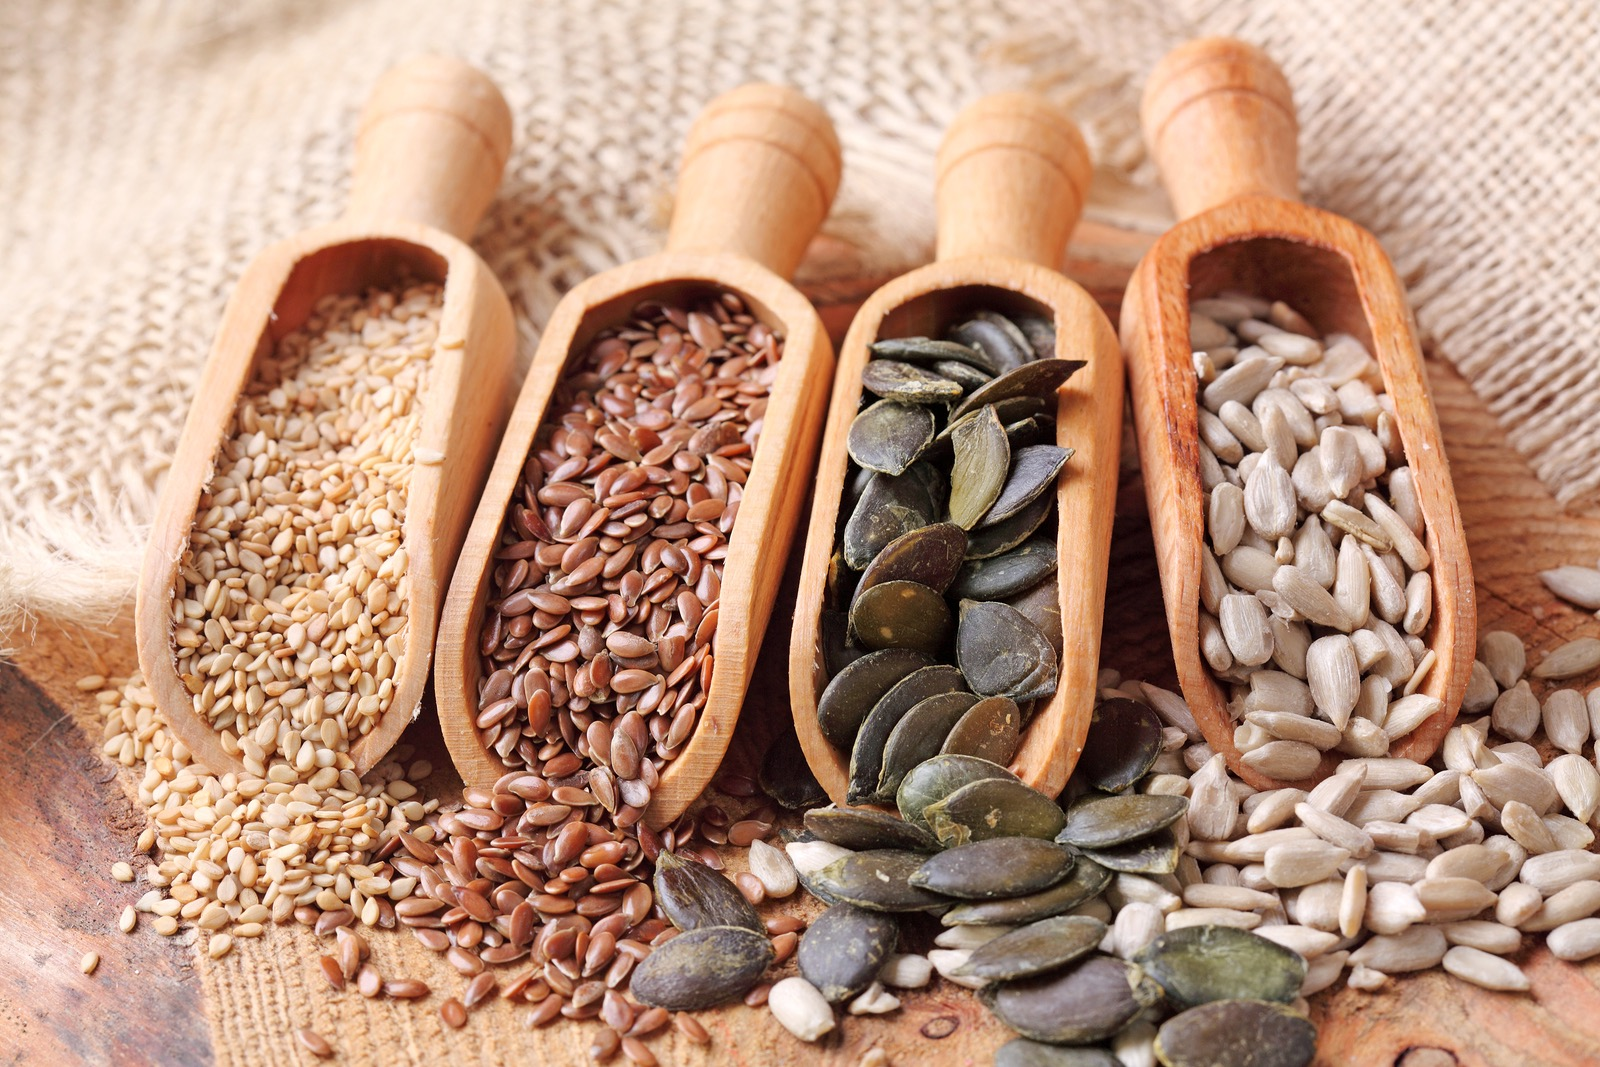 Hormonal Imbalances? Seeds Might Be Your Fix | Healthy Eating And Living